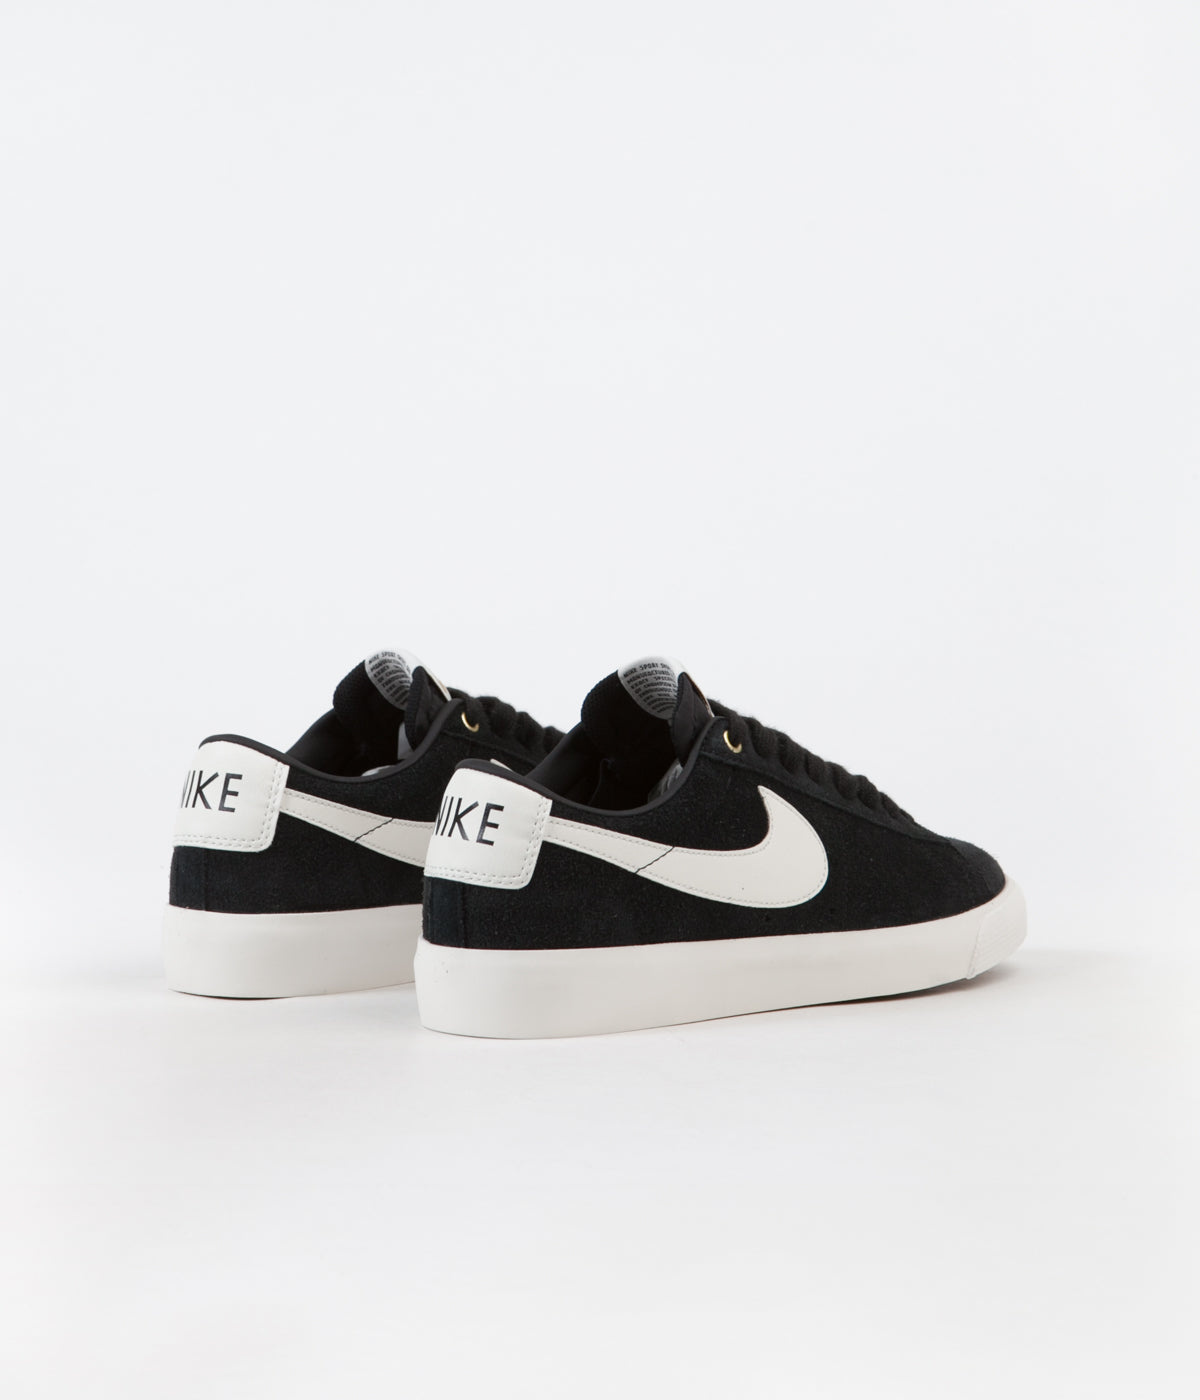 new product 2c55e 5d0b1 Nike SB Blazer Low GT Shoes - Black / Sail | Flatspot